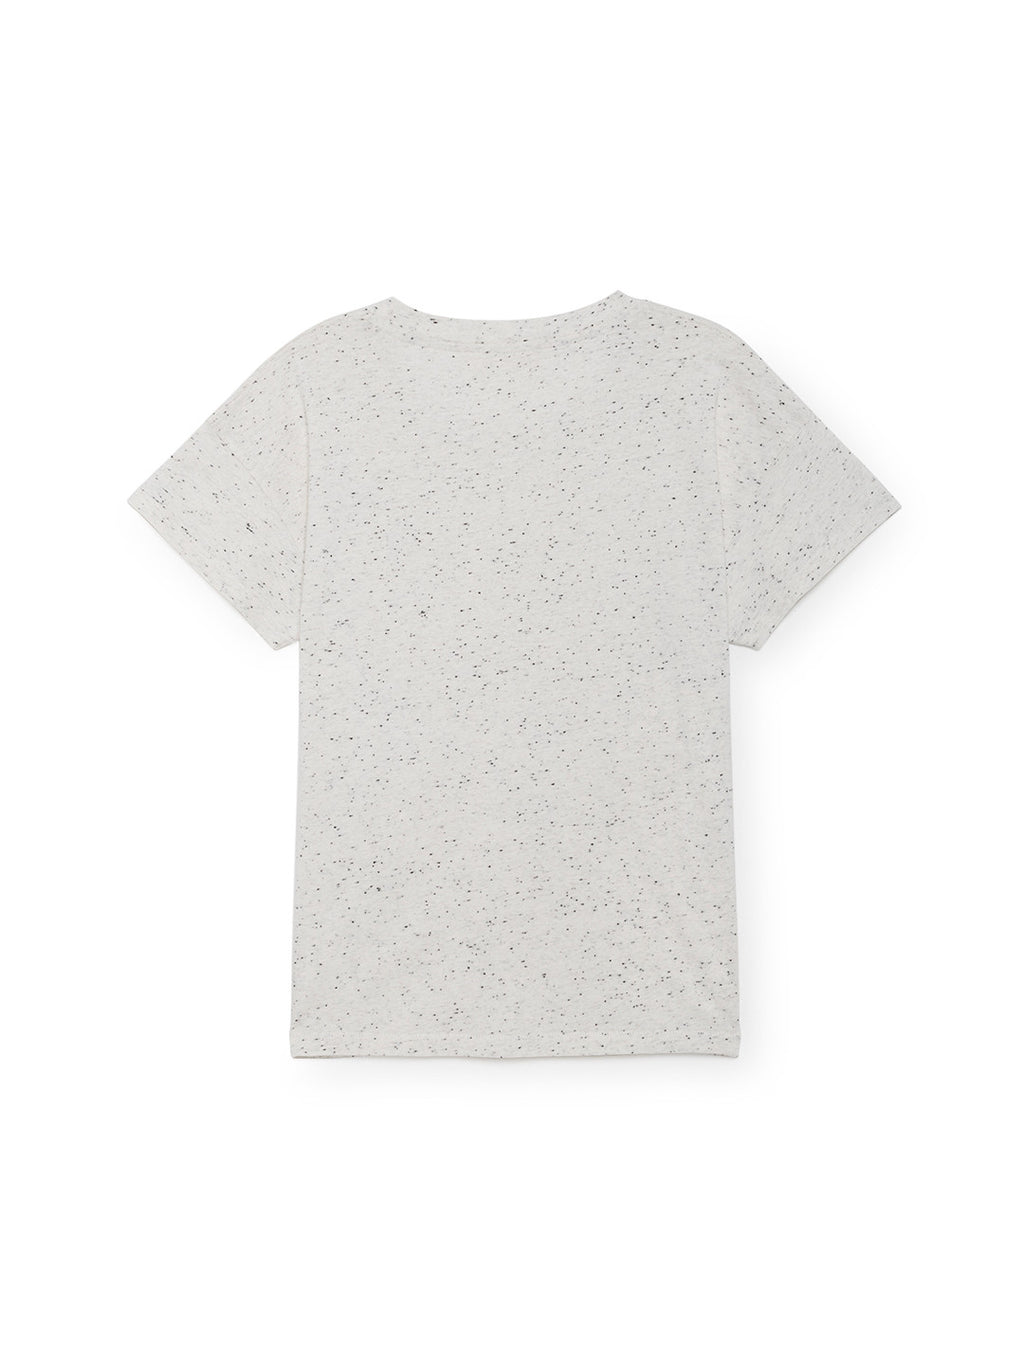 TWOTHIRDS Womens Tee: Sepanggar - White back